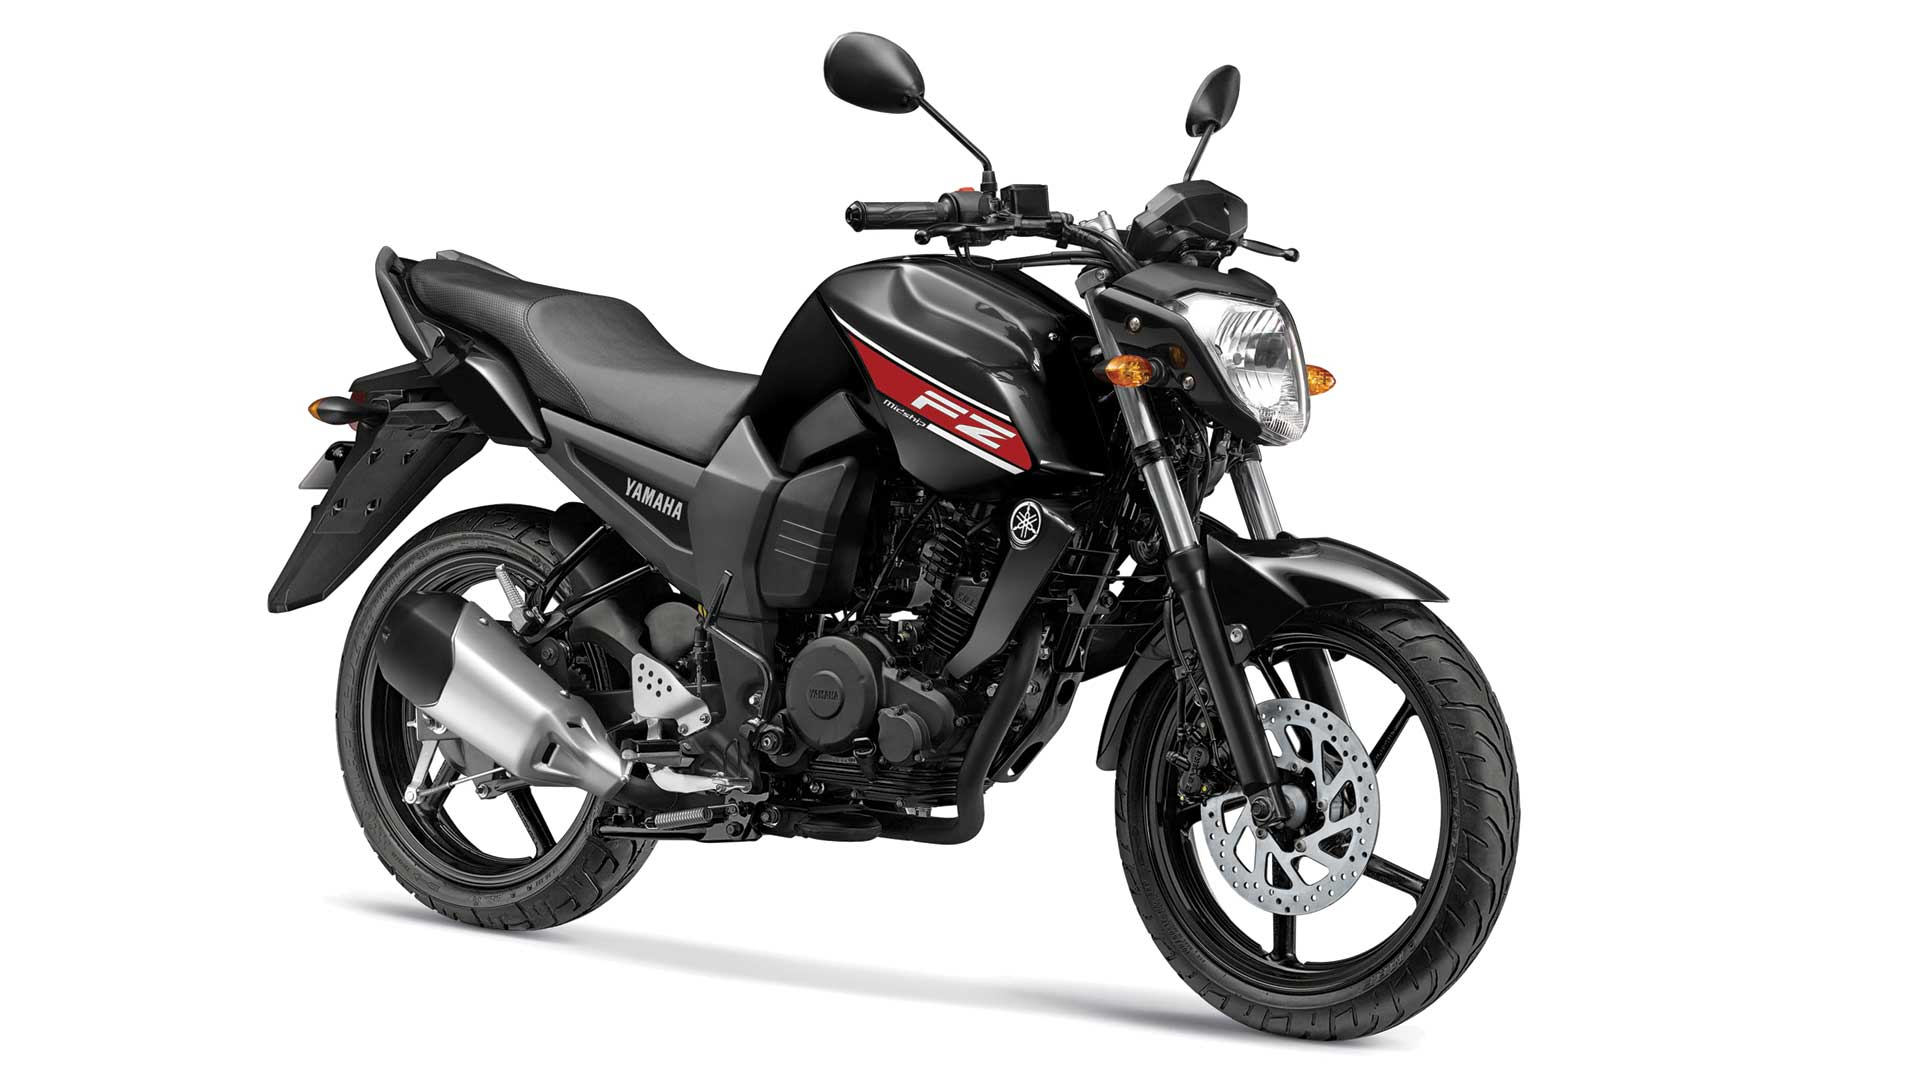 Yamaha Fz 2014 Version 2 0 Price Mileage Reviews